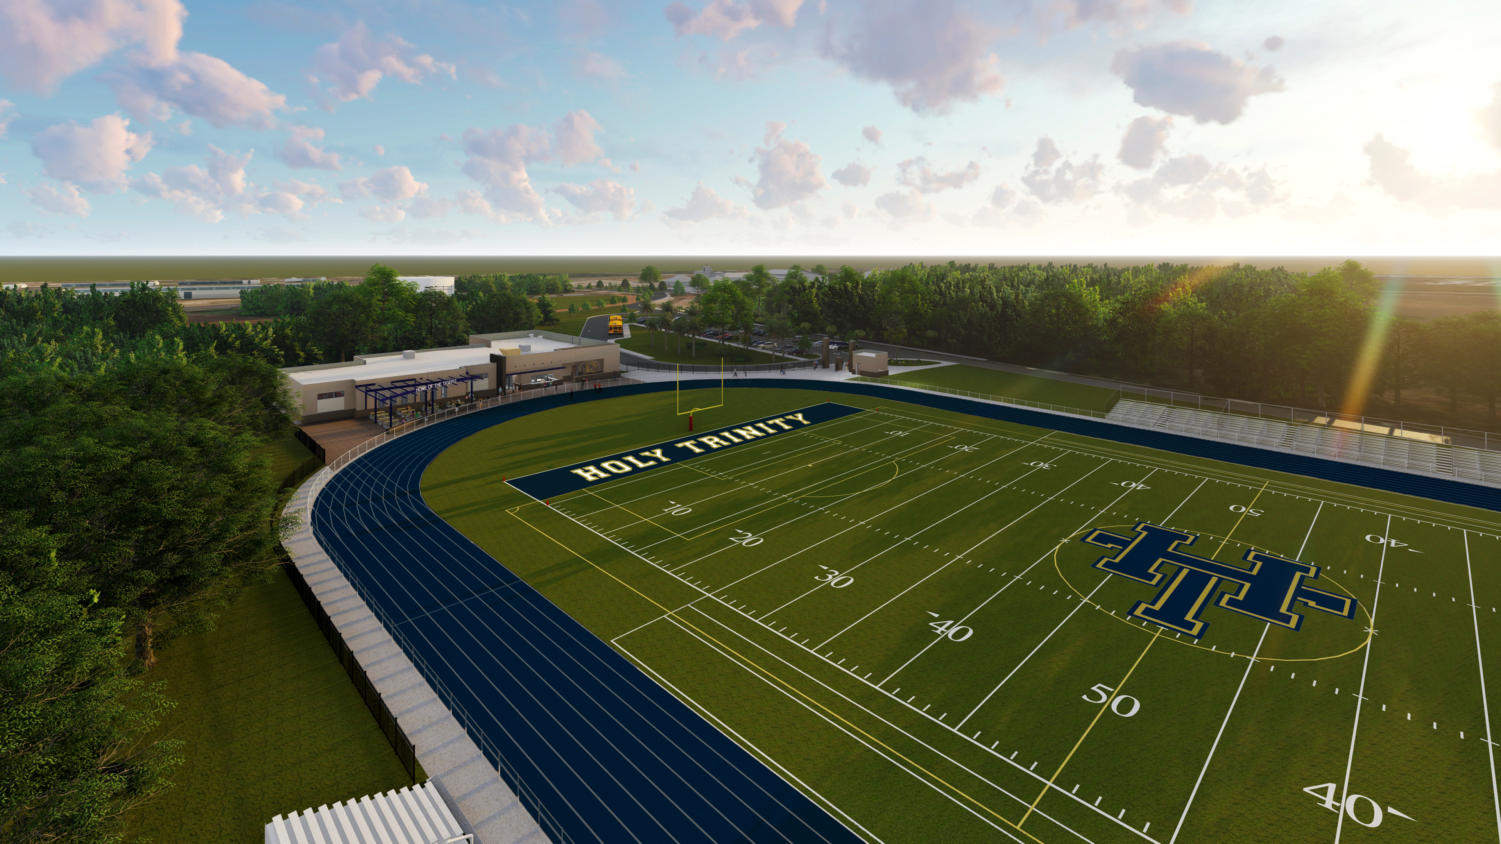 The newest rendering of the Tiger Complex depicts the blue track and turf field. The project is set to finish Phase One in the near future.